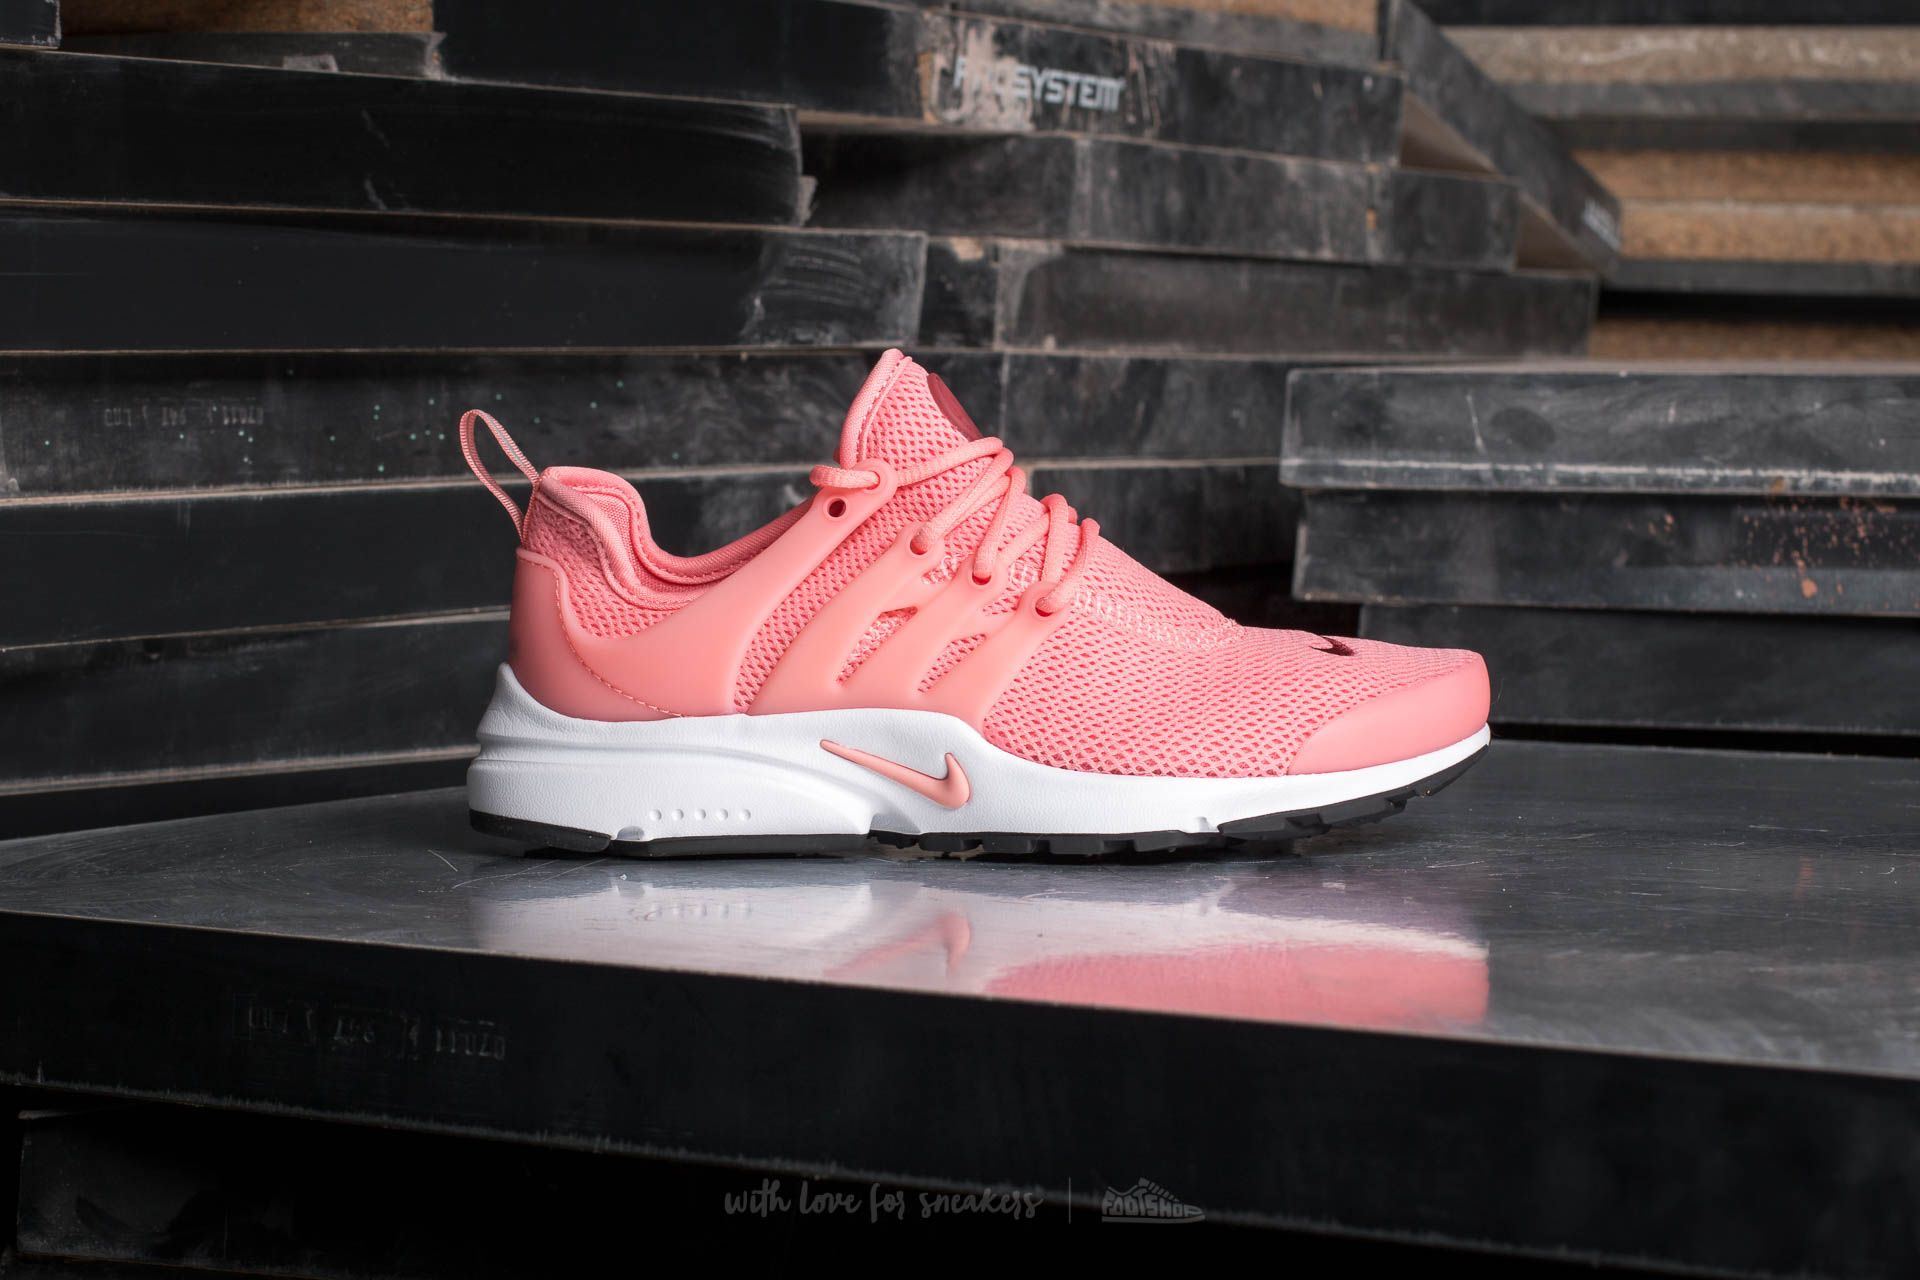 lowest price 59c21 6ec44 Nike W Air Presto Bright Melon/ Bright Melon | Footshop